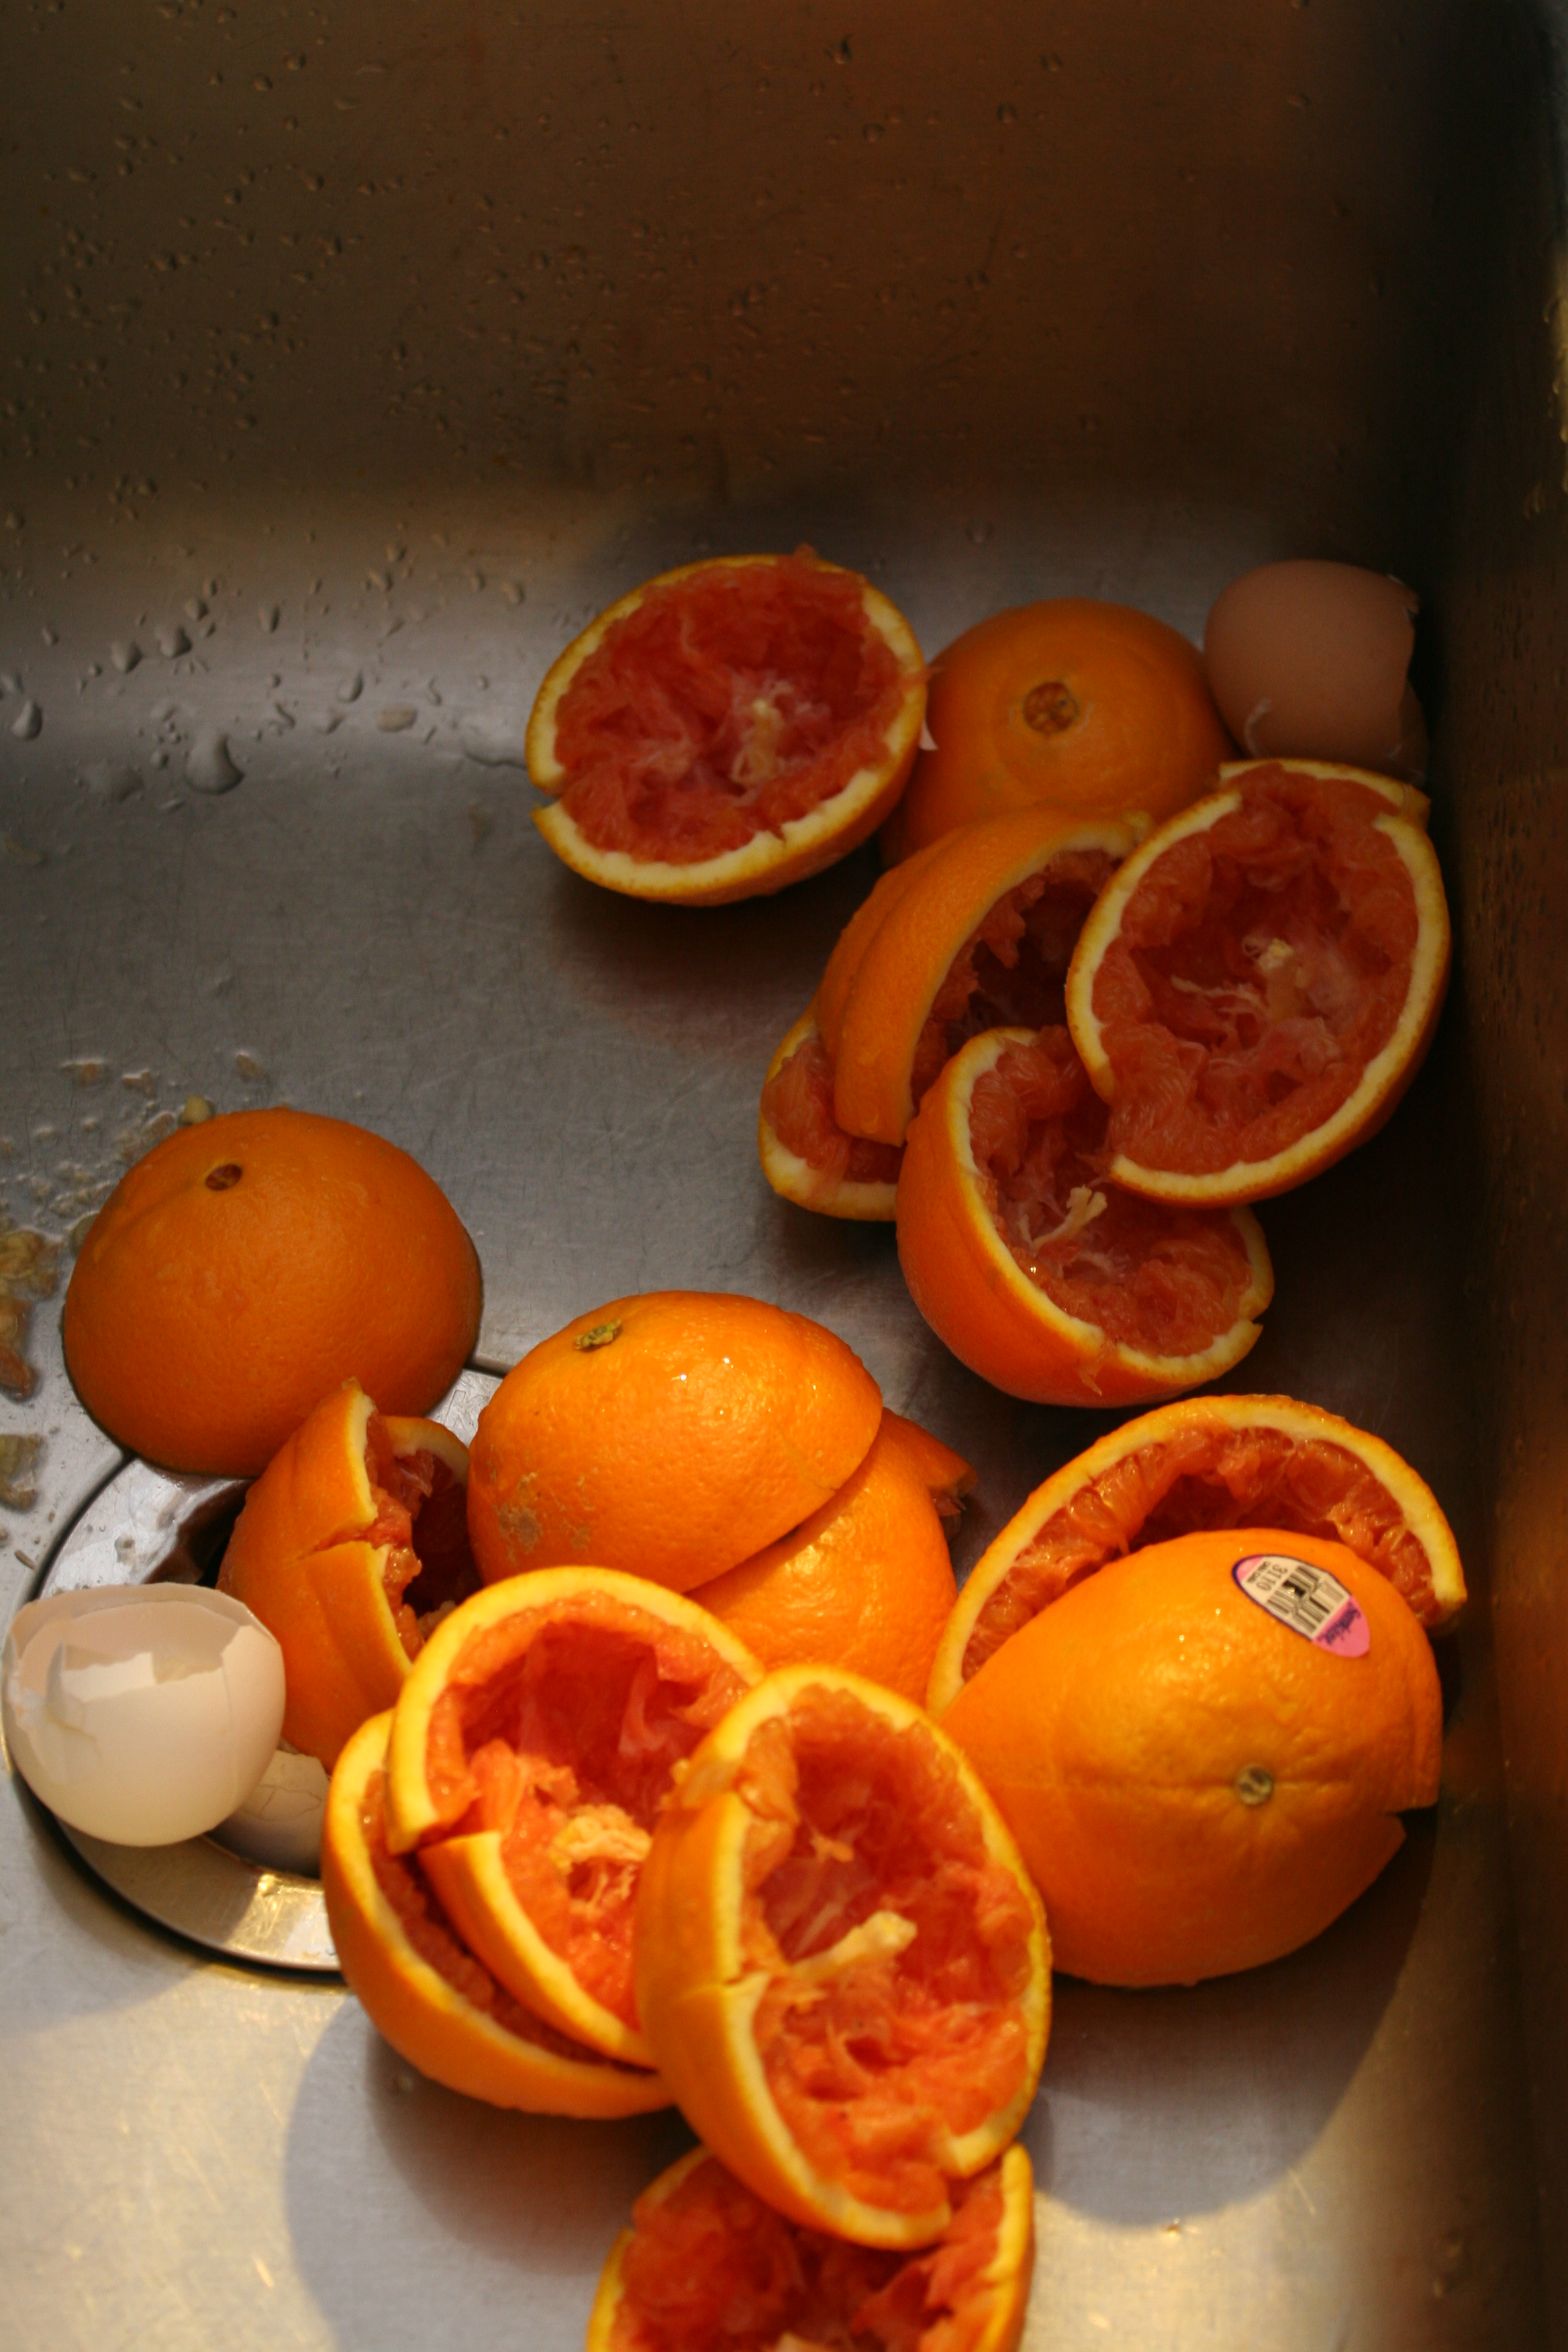 Oranges in the sink